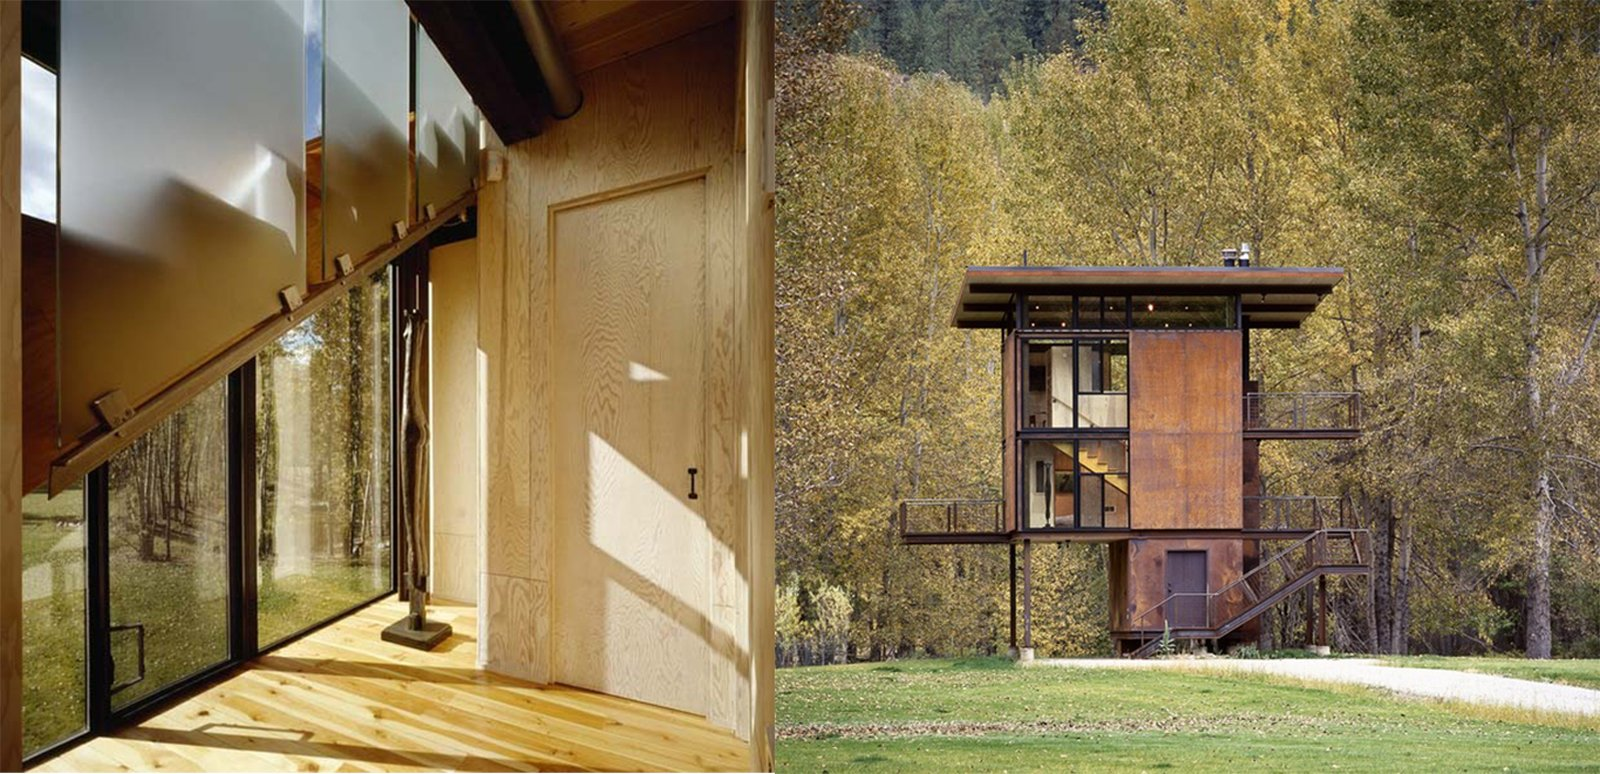 Inside Washington State's Steel Cabin On Stilts - Photo 4 of 6